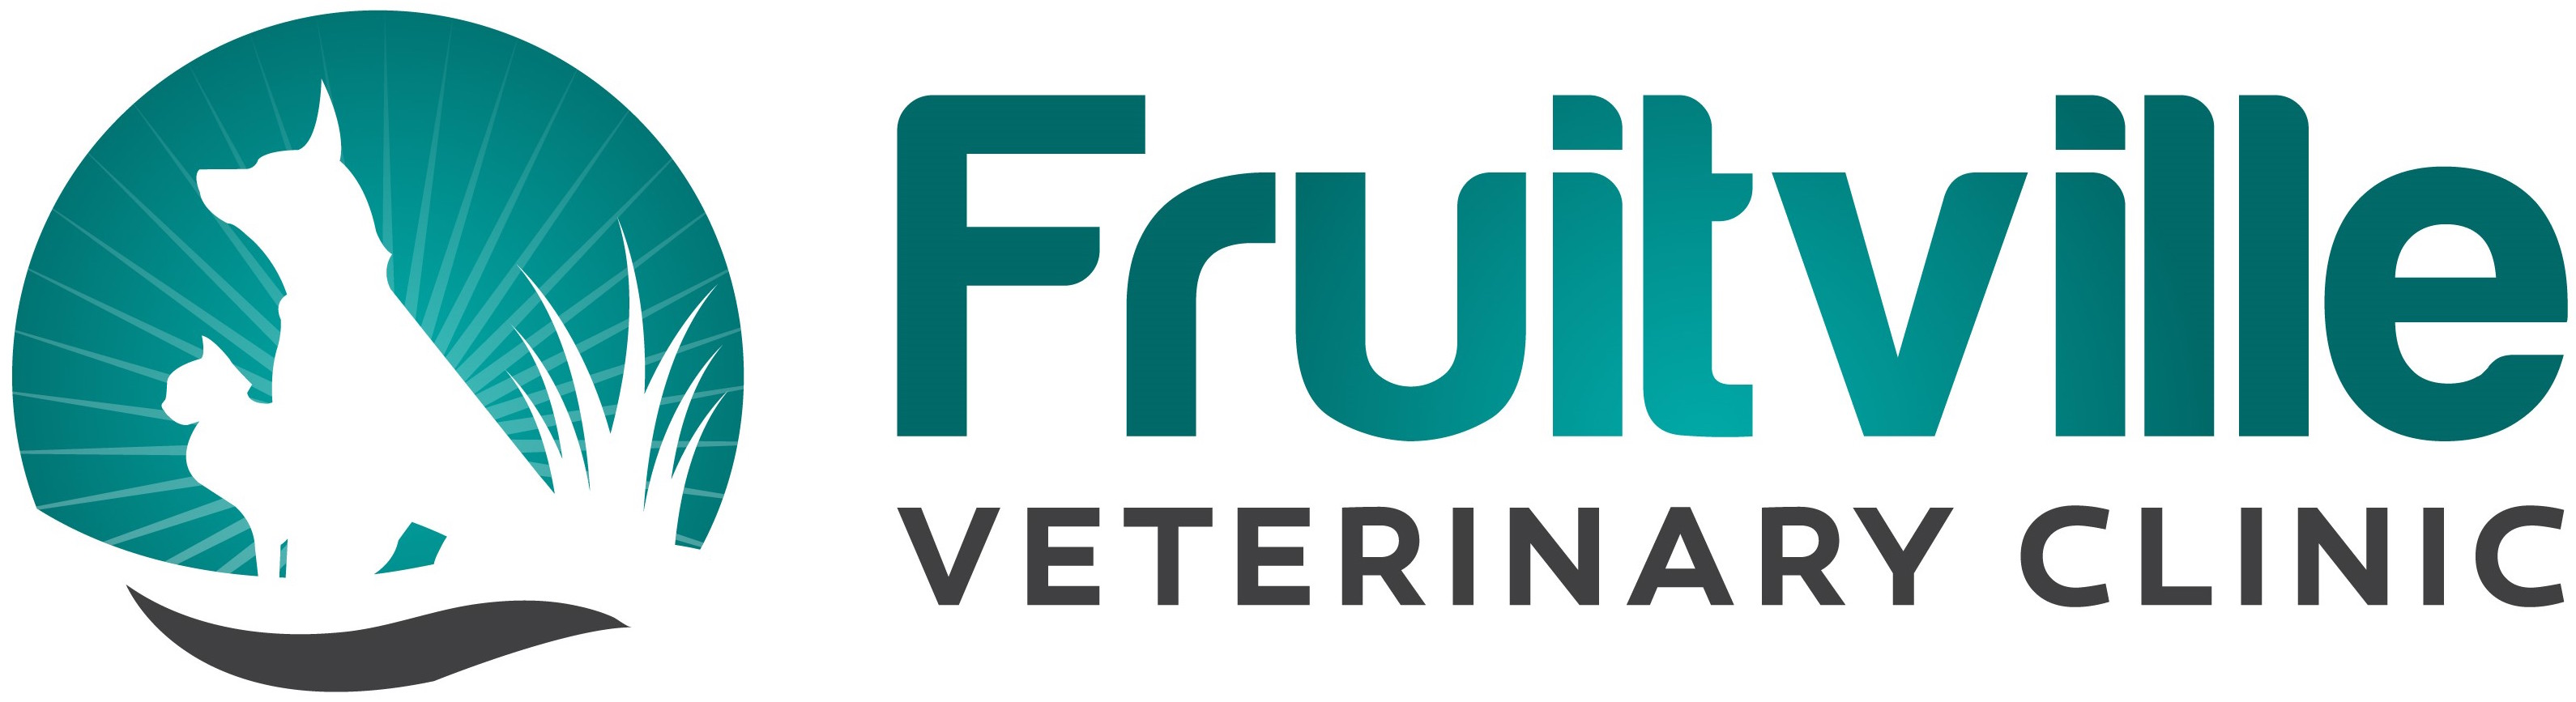 Fruitville Veterinary Clinic